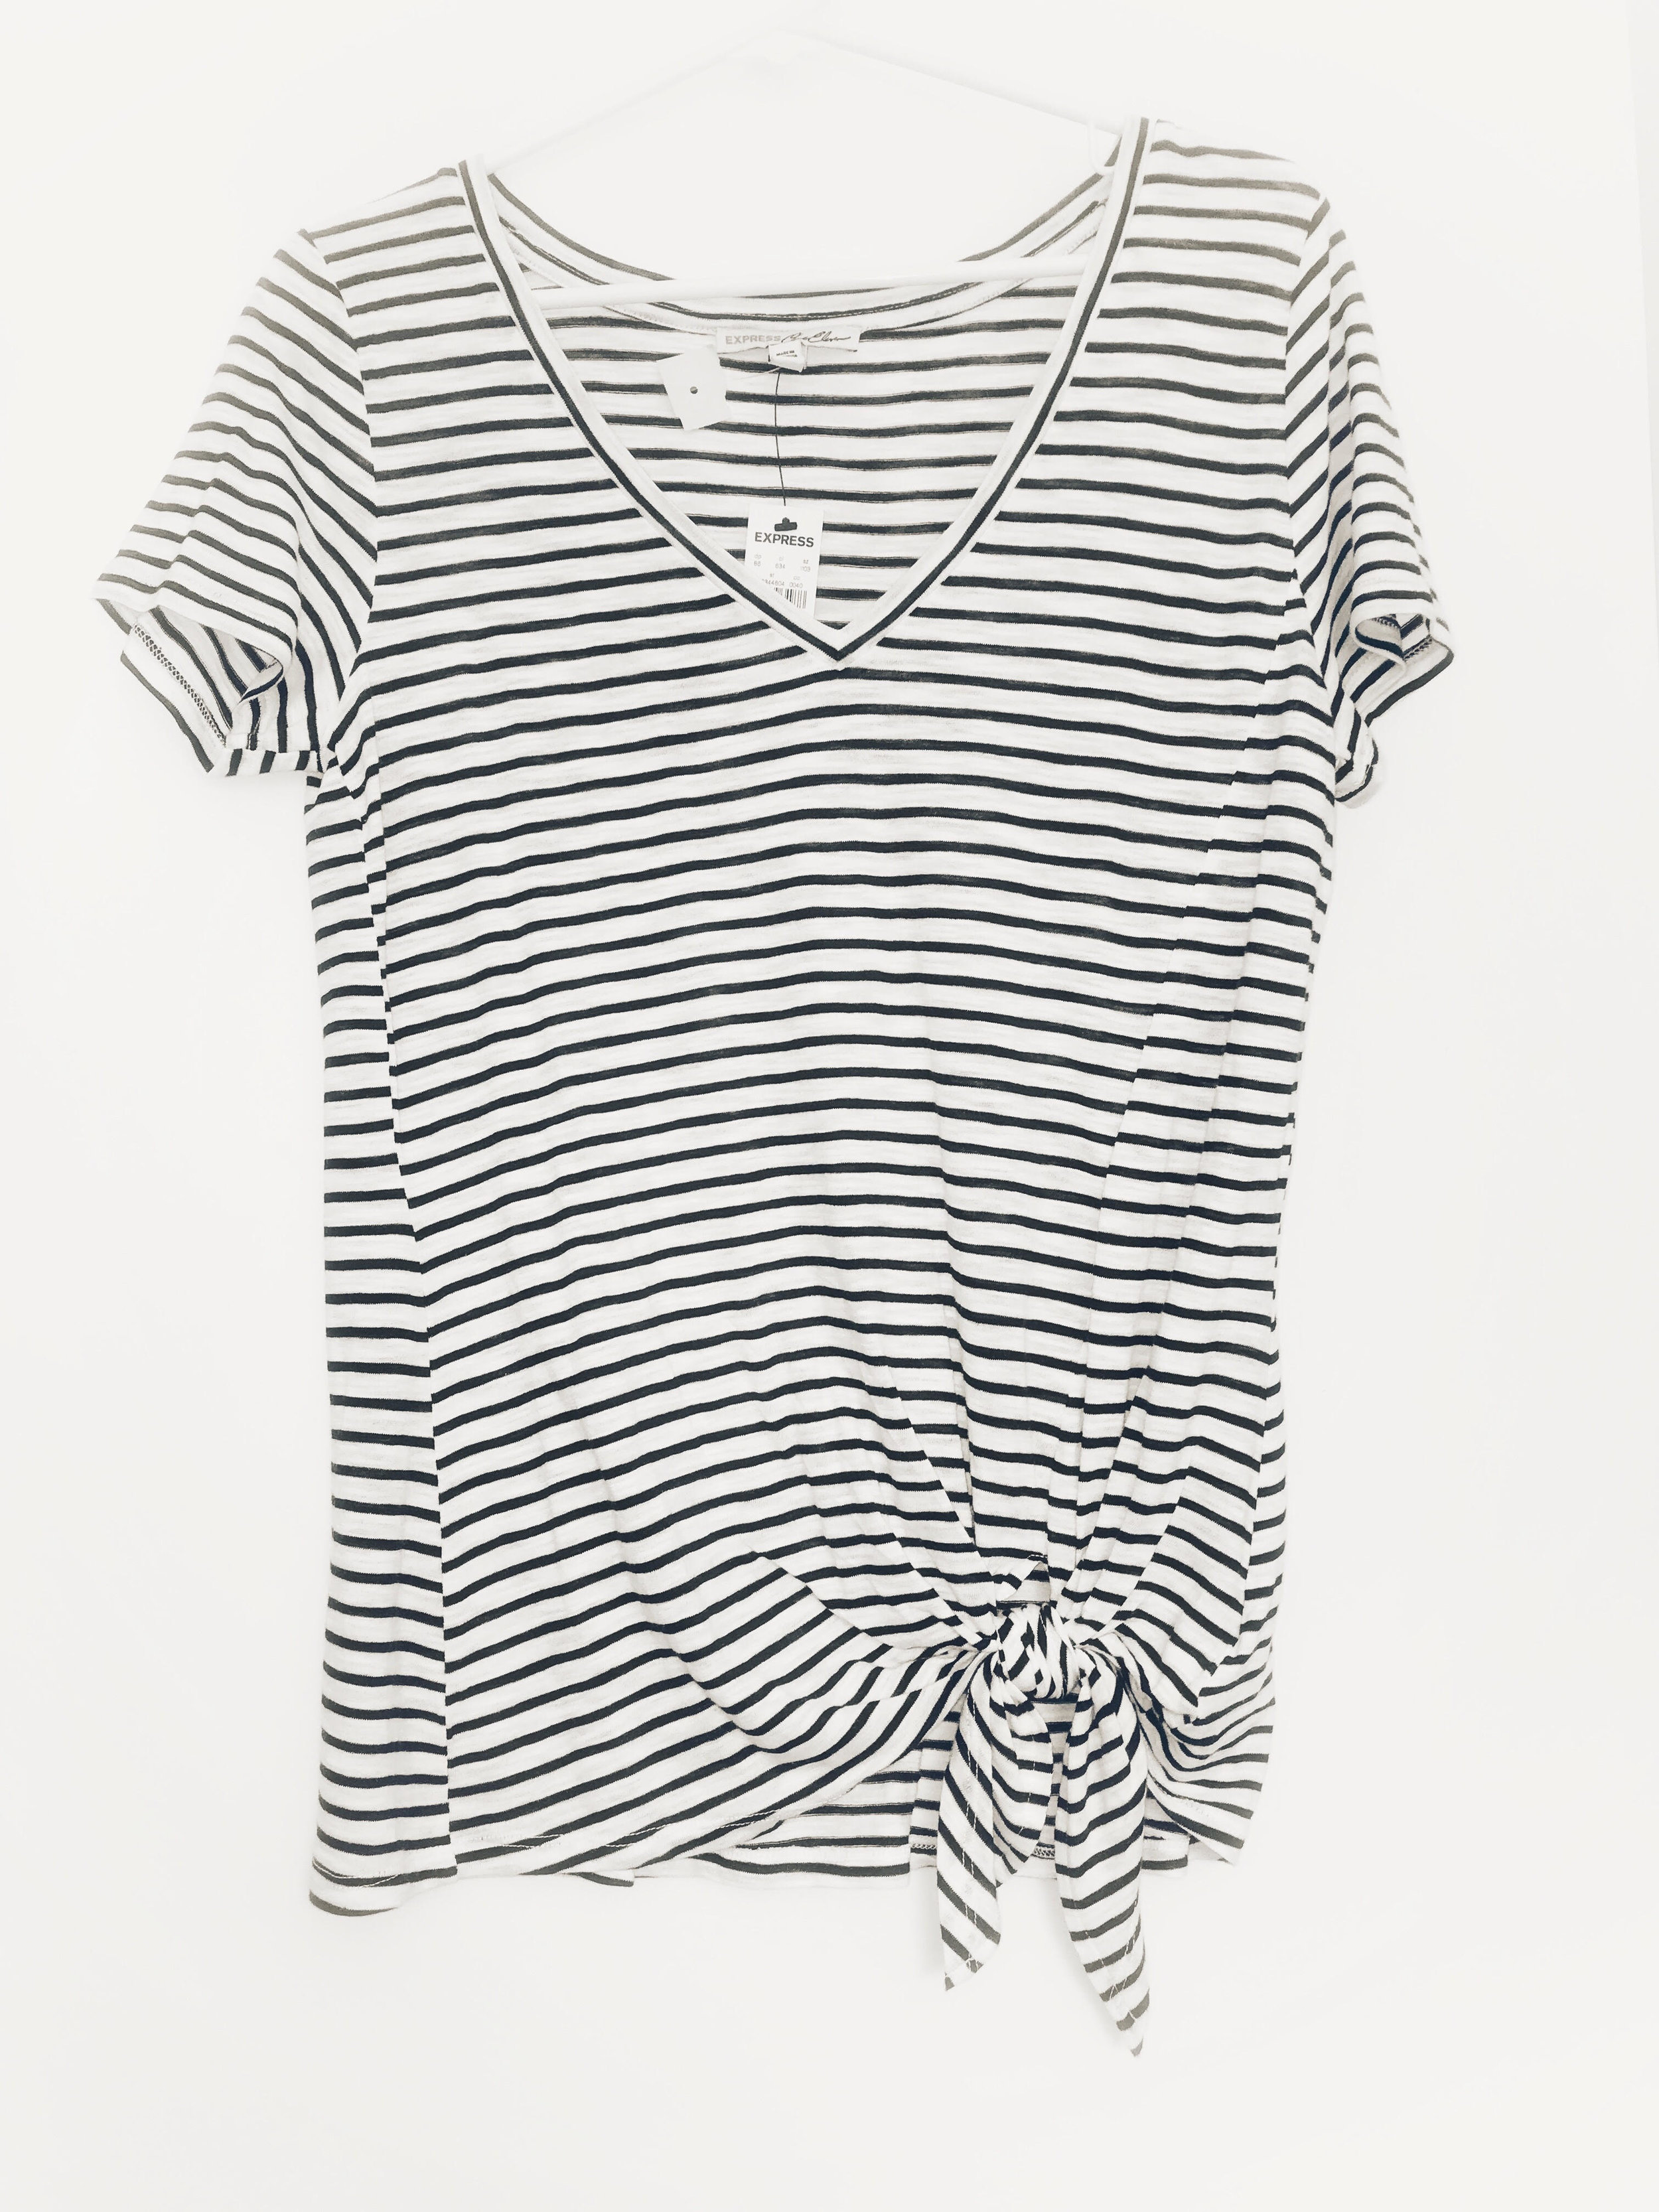 2. Nautical T-shirt - Another beach trip gem found second-hand (and with the original tags on it!).Price: $11Second Chance Consignment Shop (Express brand, $29.99 originally)